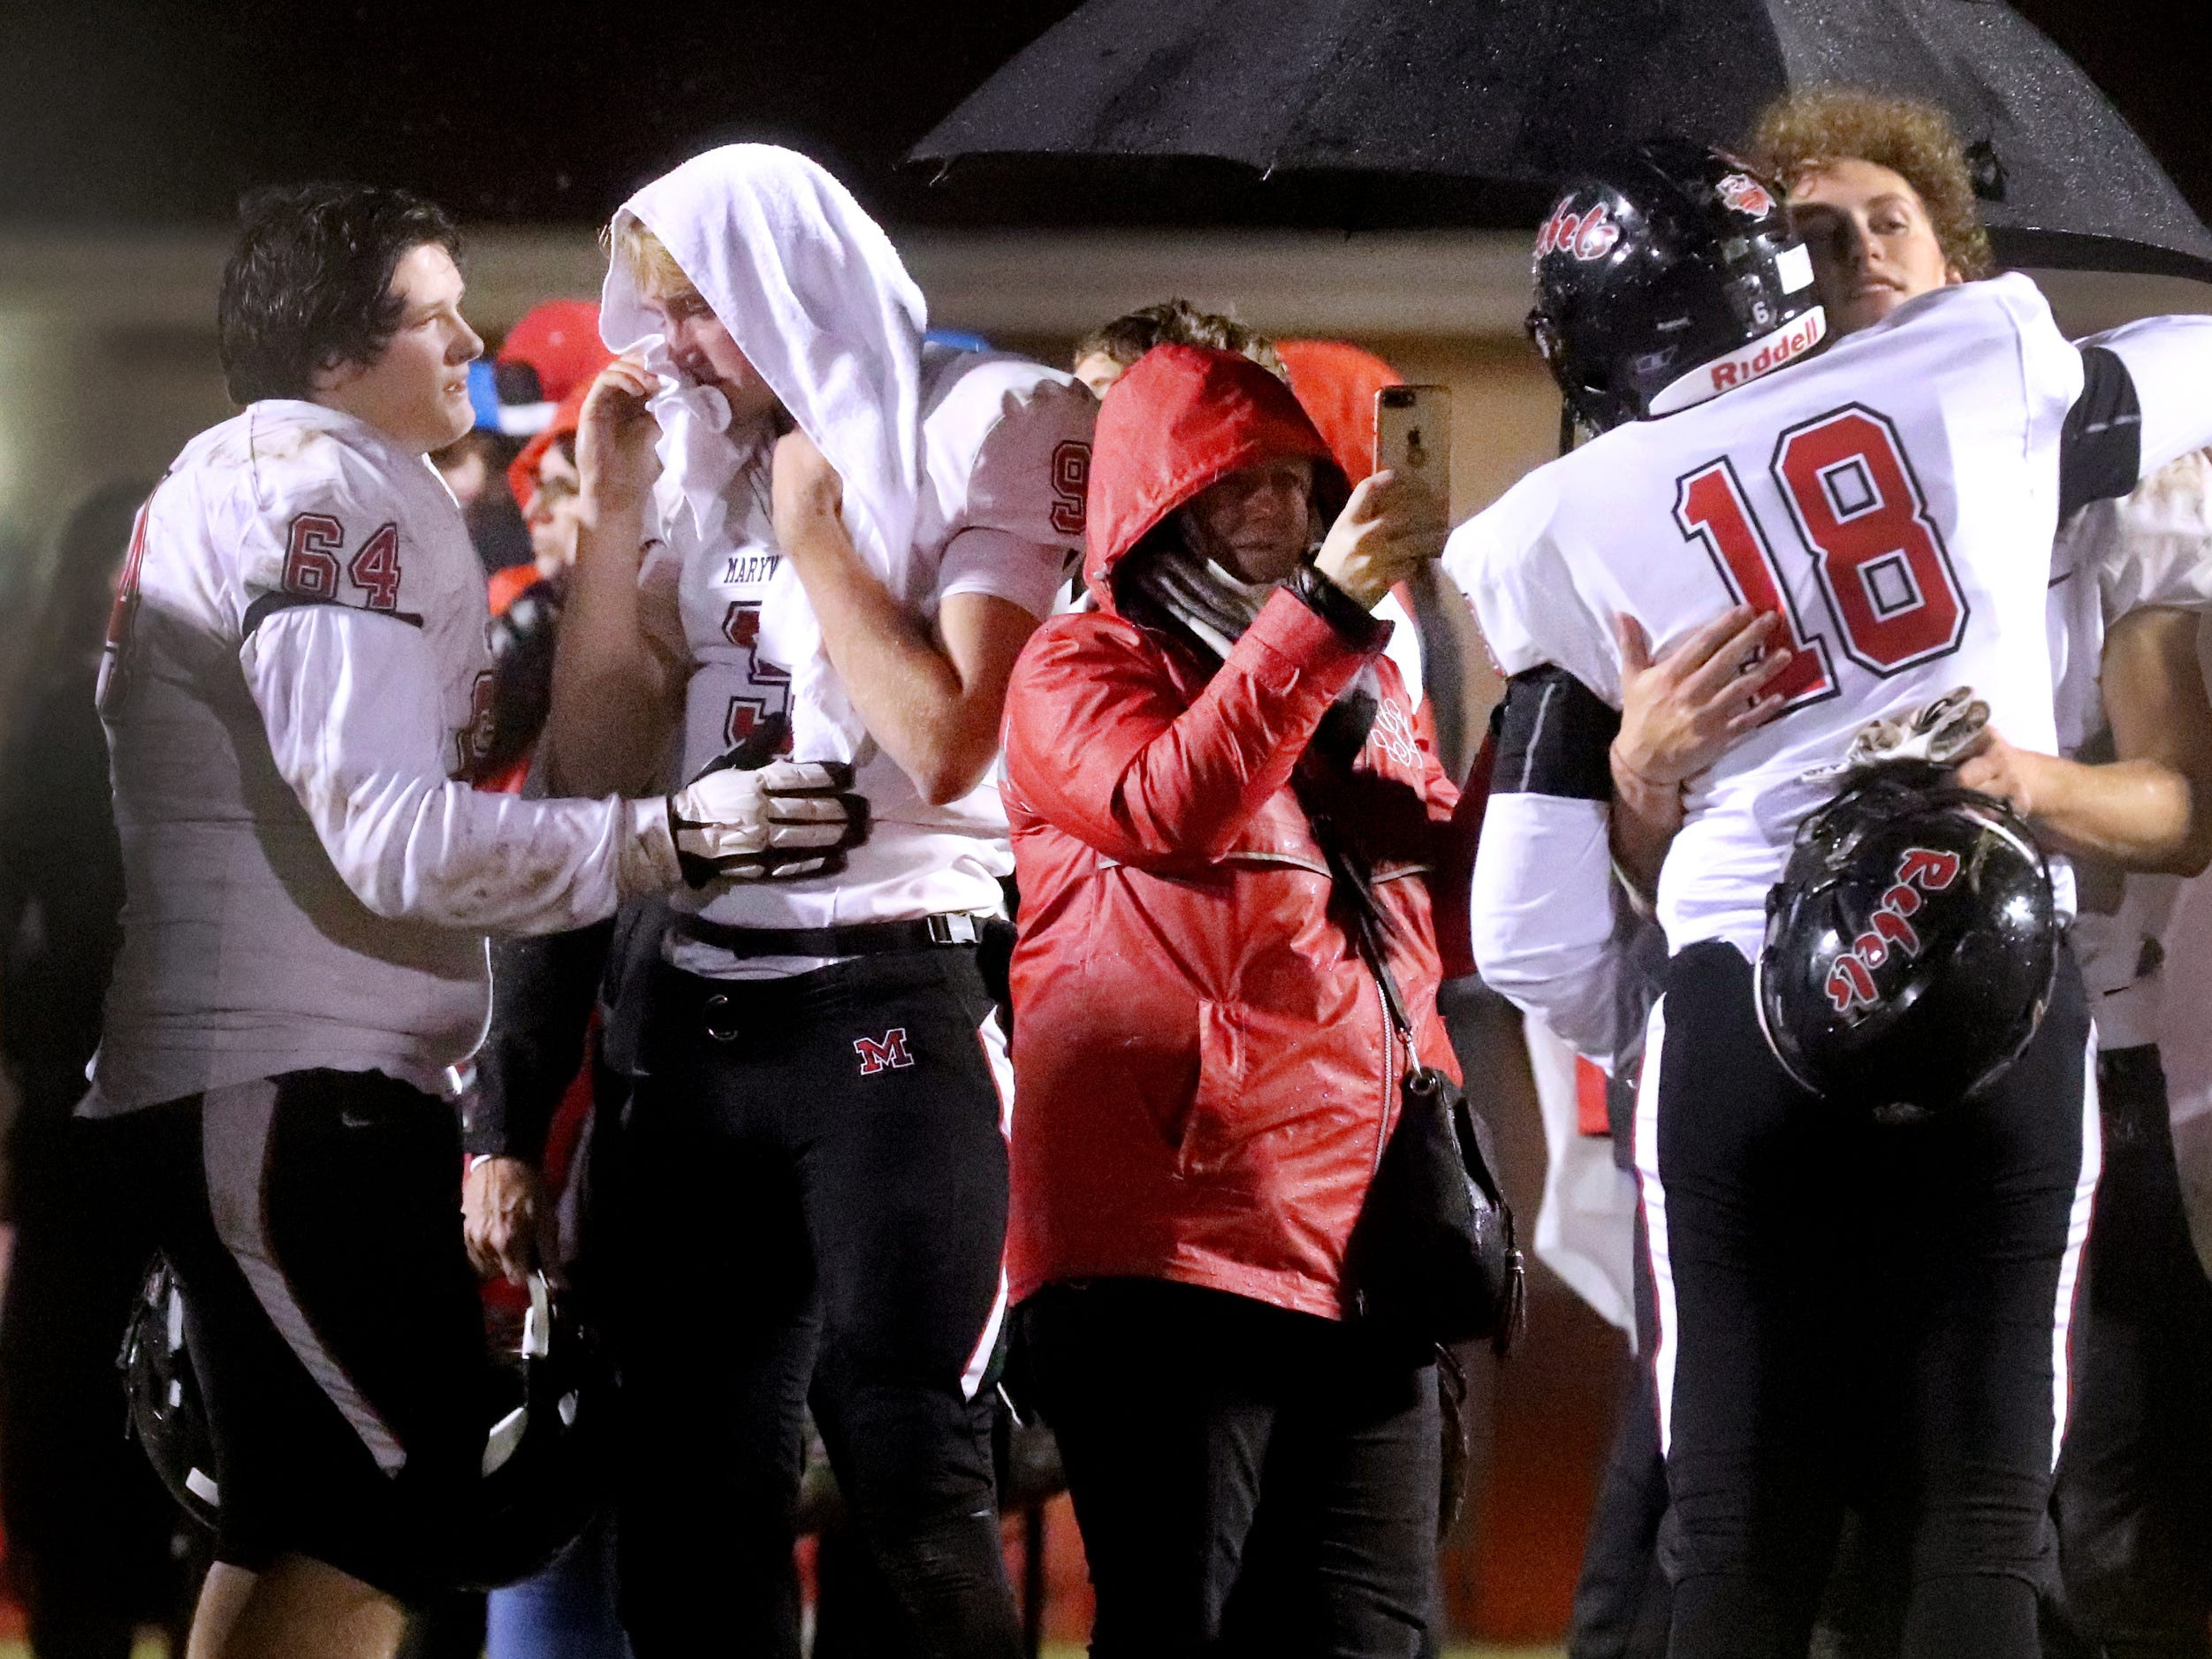 Maryville's players Blaize Welch (64) and quarterback Cade Chambers (9) console each other as well as Carson Jones (18) and Michael Jones (6) after losing to Oakland 38-0 in Murfreesboro, on Friday, Aug. 23 2018, during the 6A playoffs.